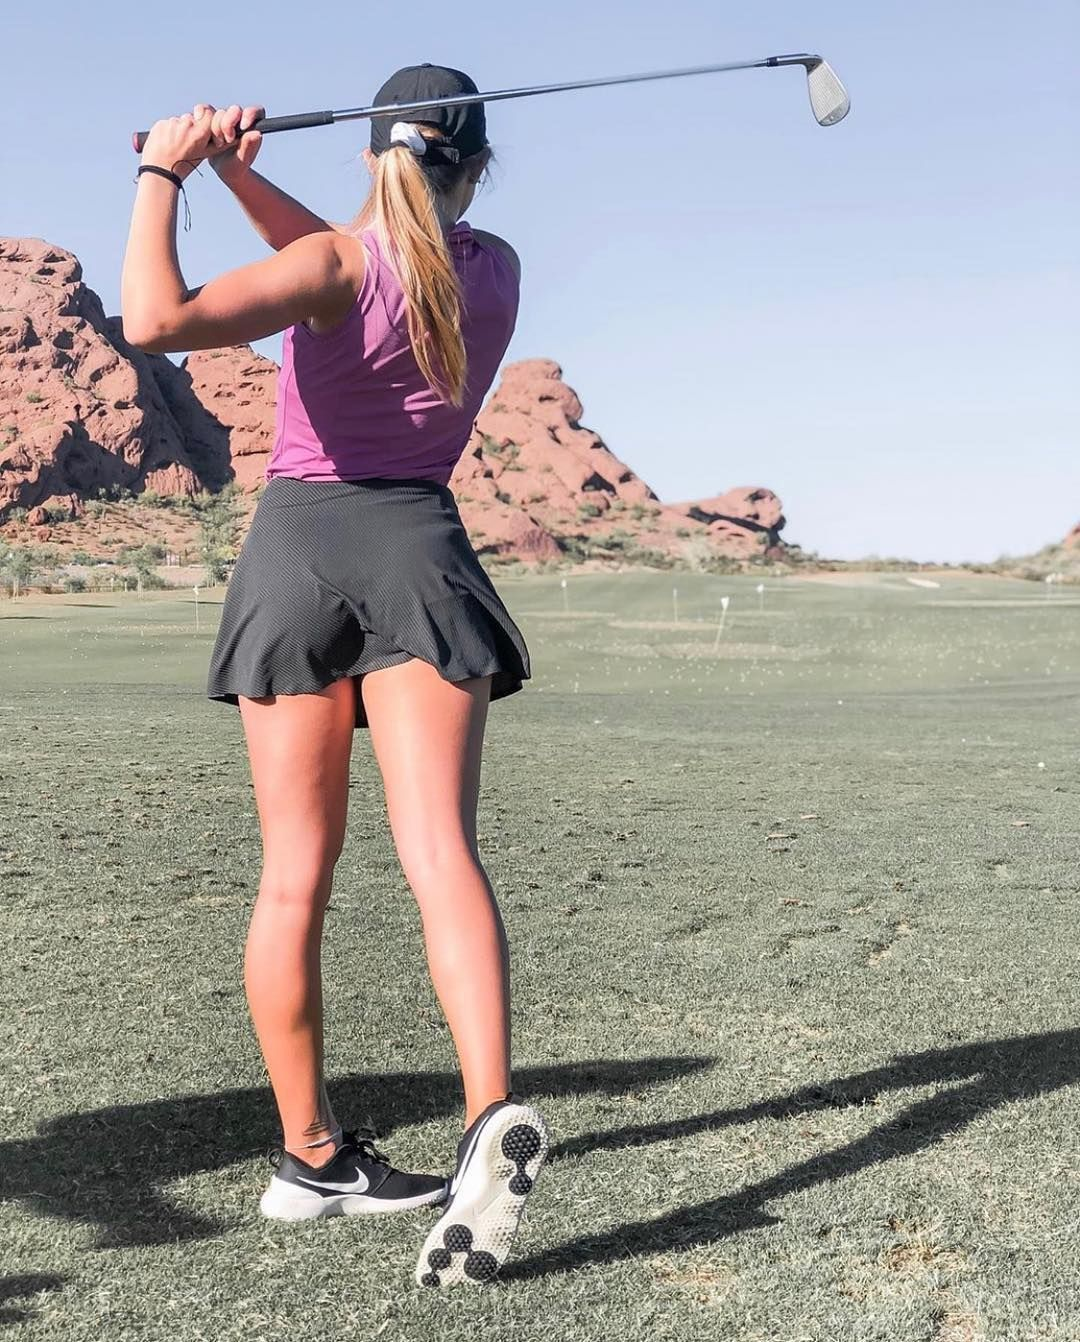 Pics of girls at golf games up skirts pic